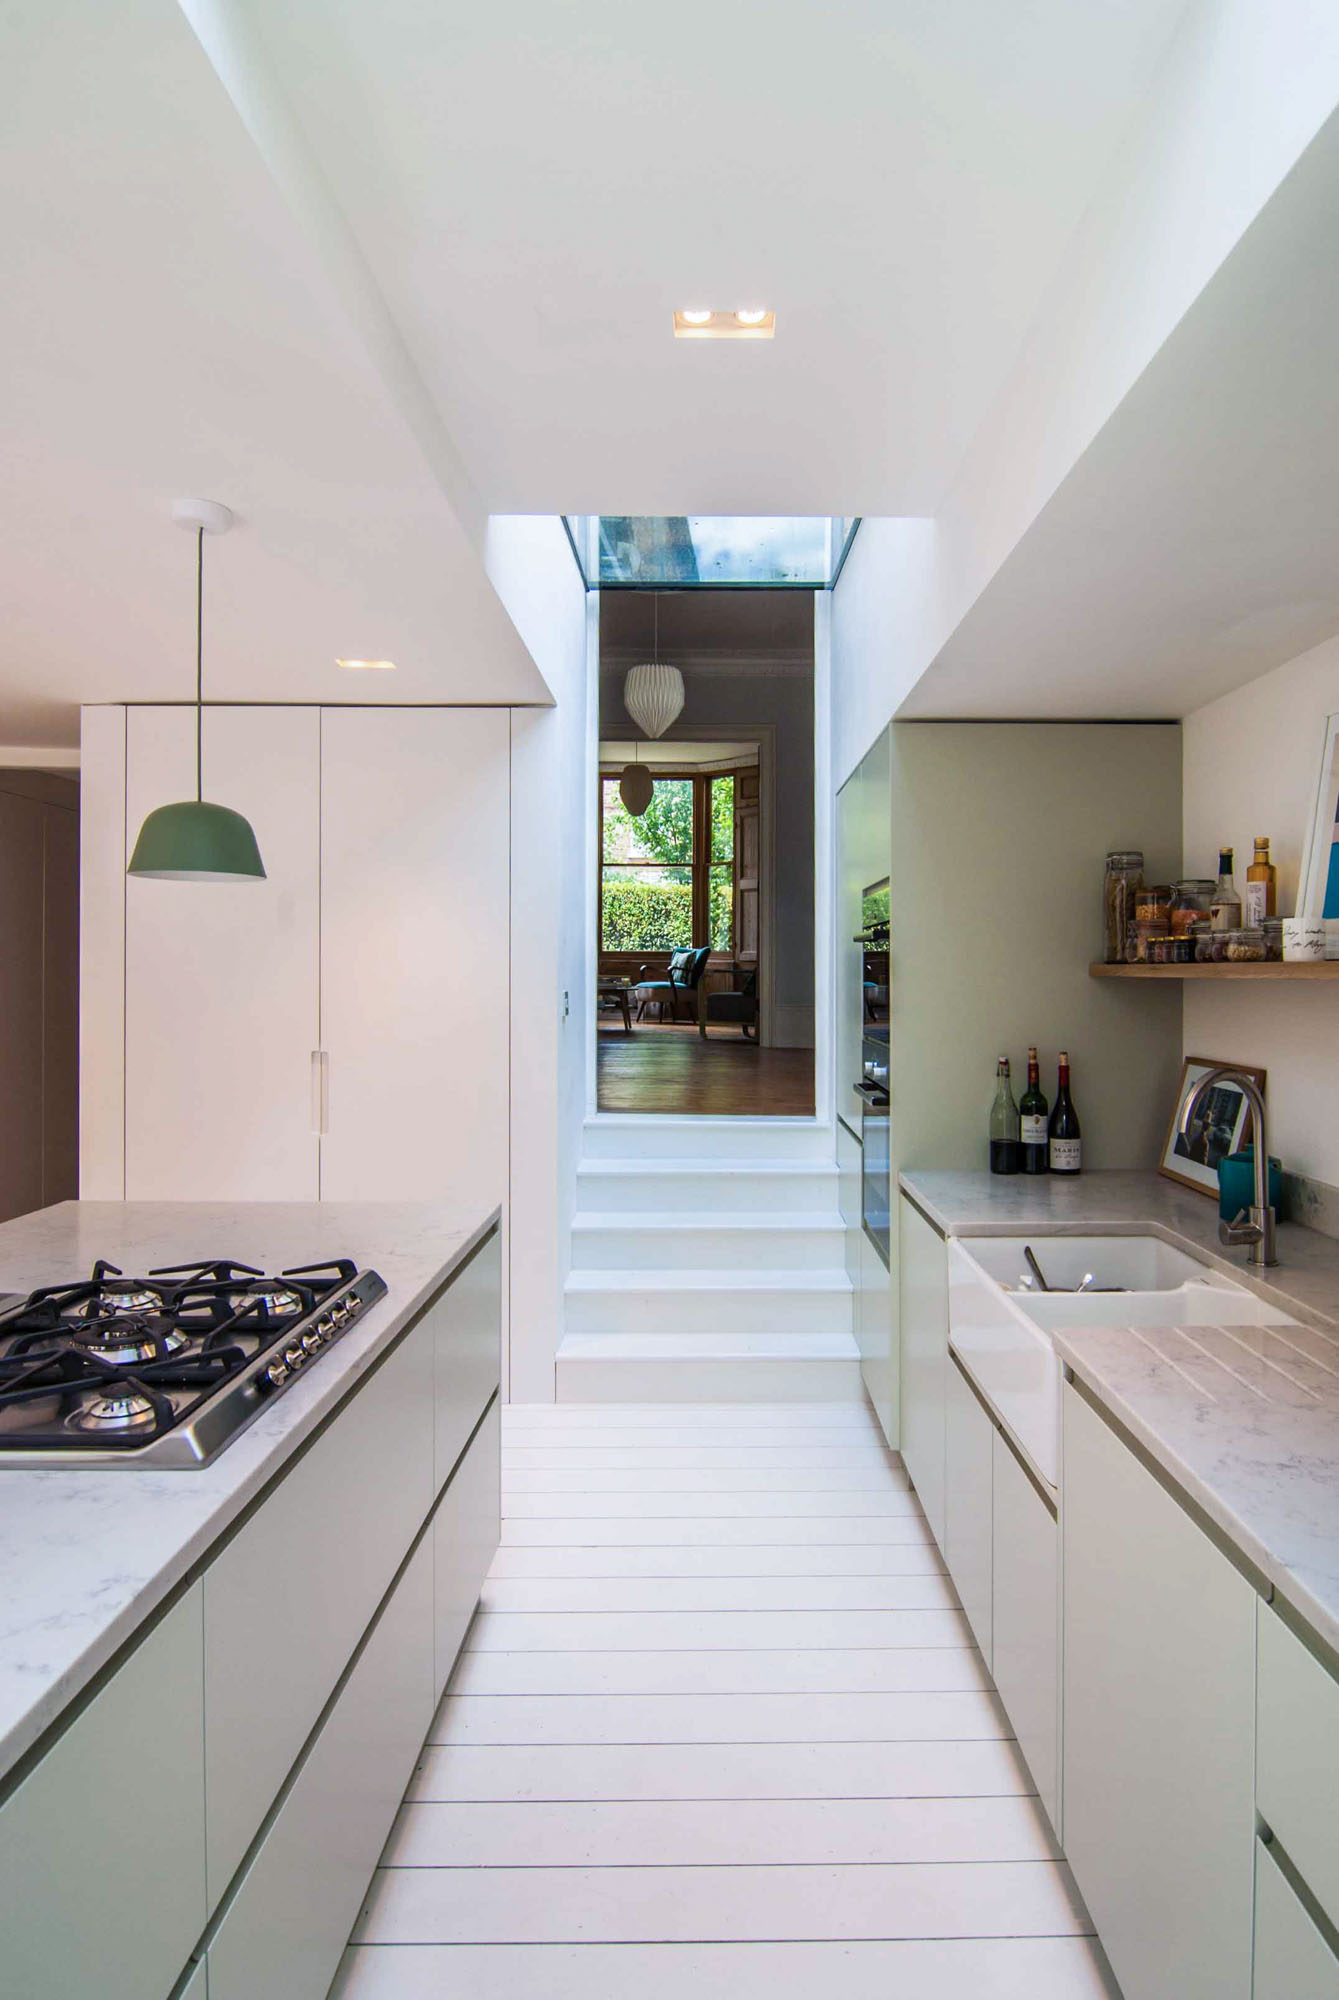 Photographer's House: Contemporary spacious kitchen with a minimalist colour palette.